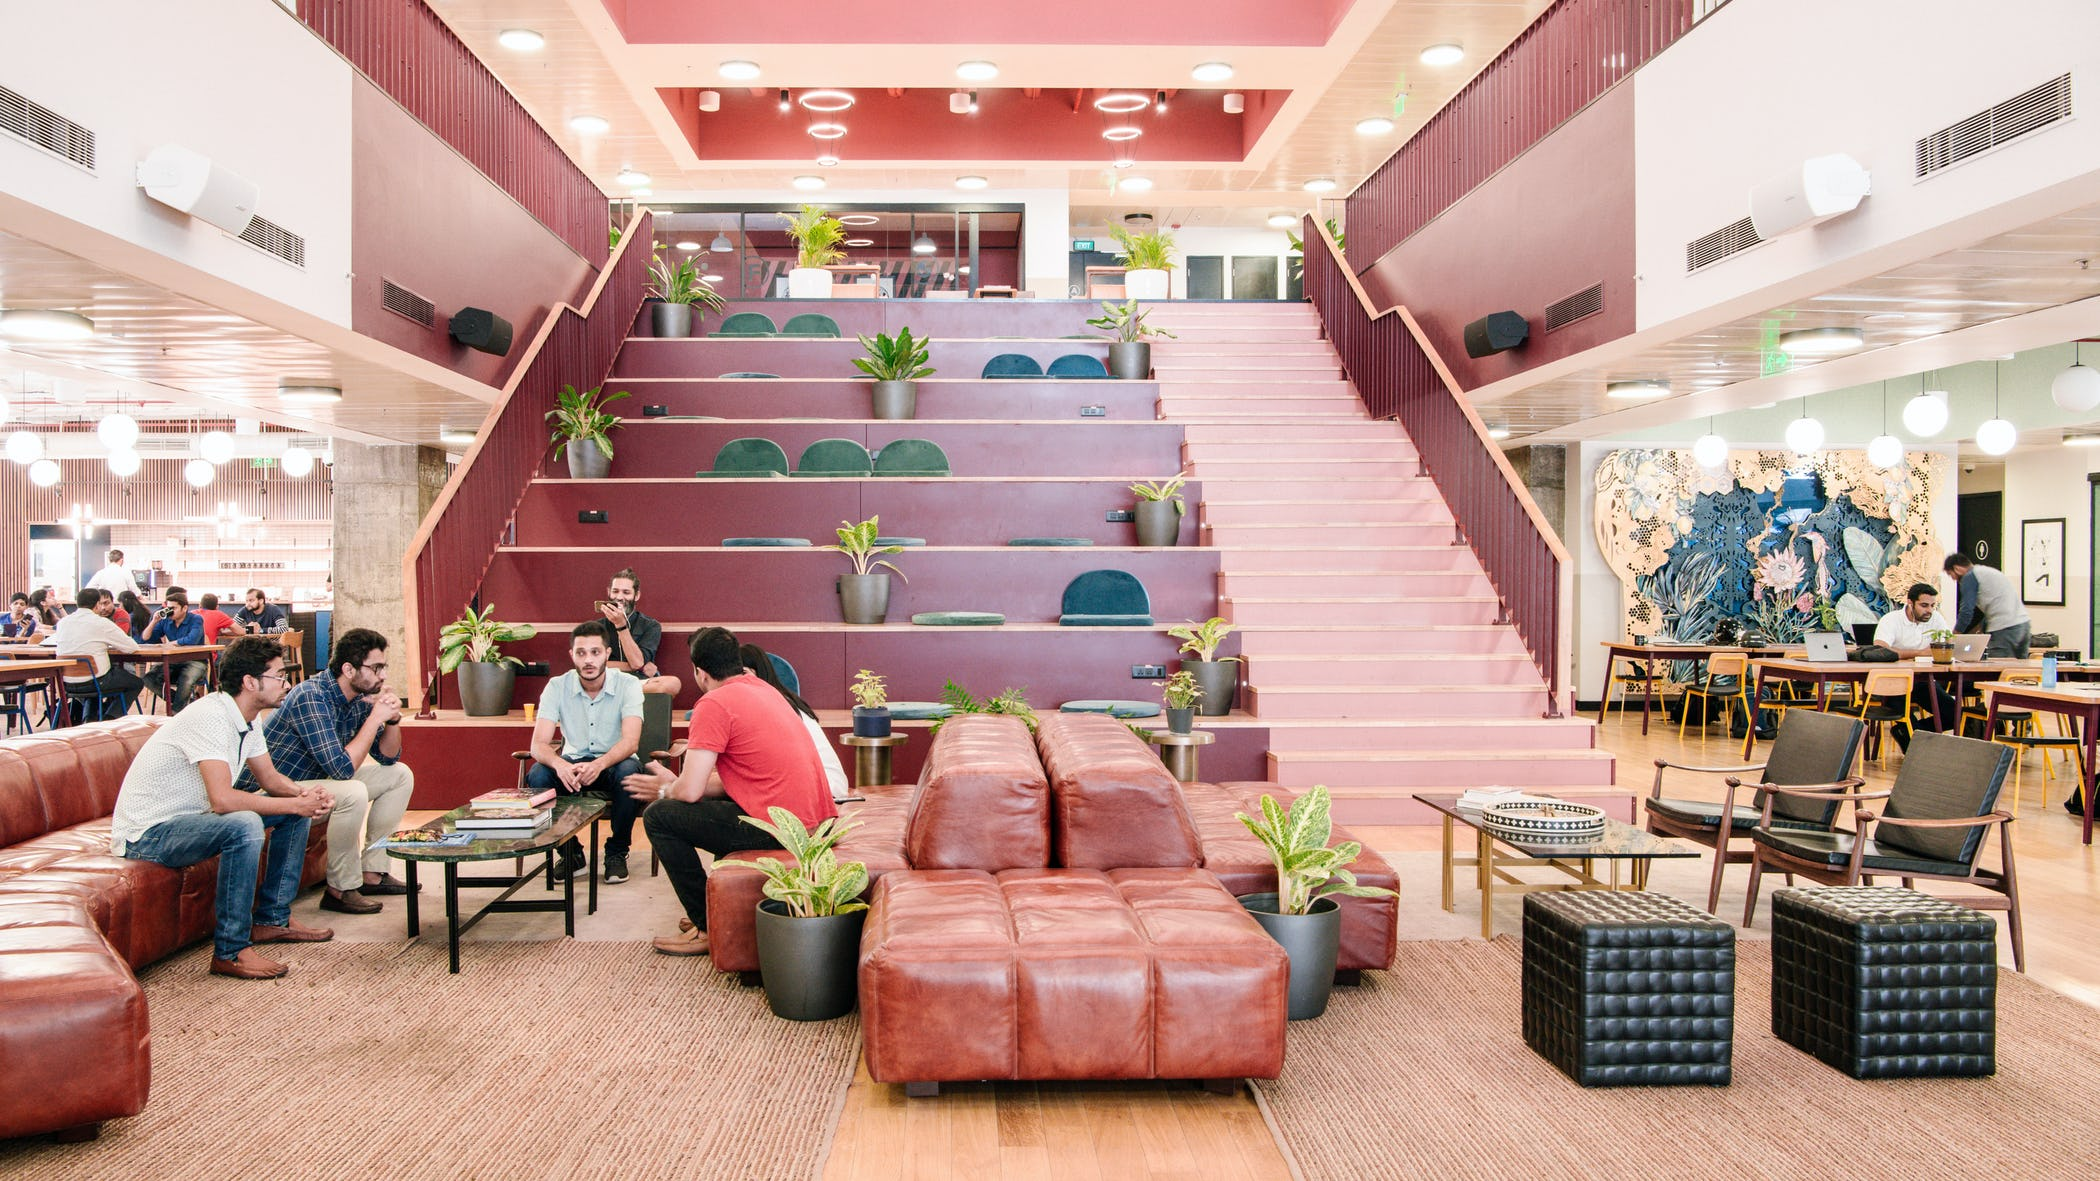 A coworking space in India.